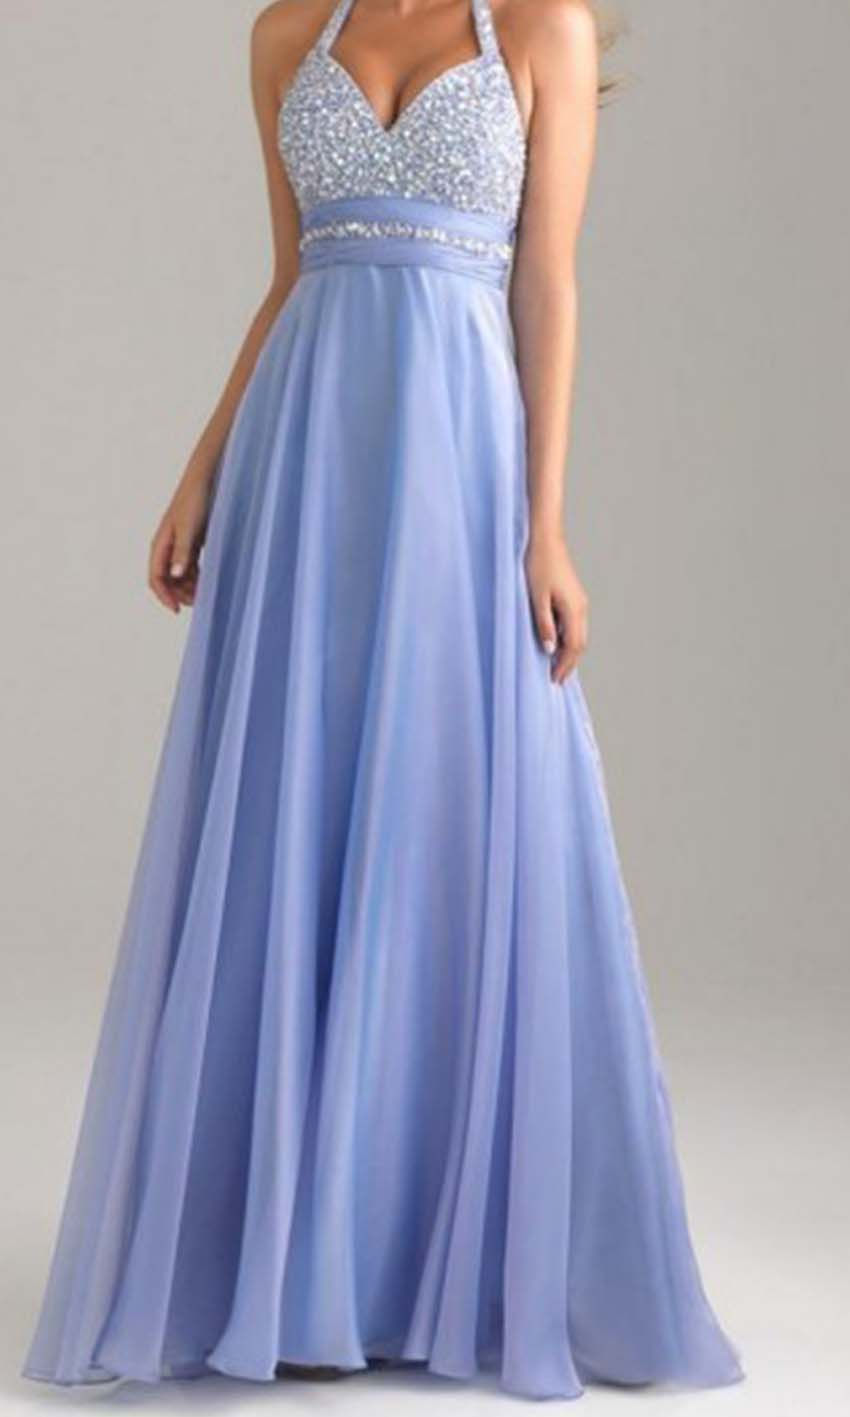 £98.00 : cheap prom dresses uk, bridesmaid dresses, 2014 prom & evening dresses, look for cheap elegant prom dresses 2014, cocktail gowns, or dresses for special occasions? kissprom.co.uk offers various bridesmaid dresses, evening dress, free shipping to uk etc.